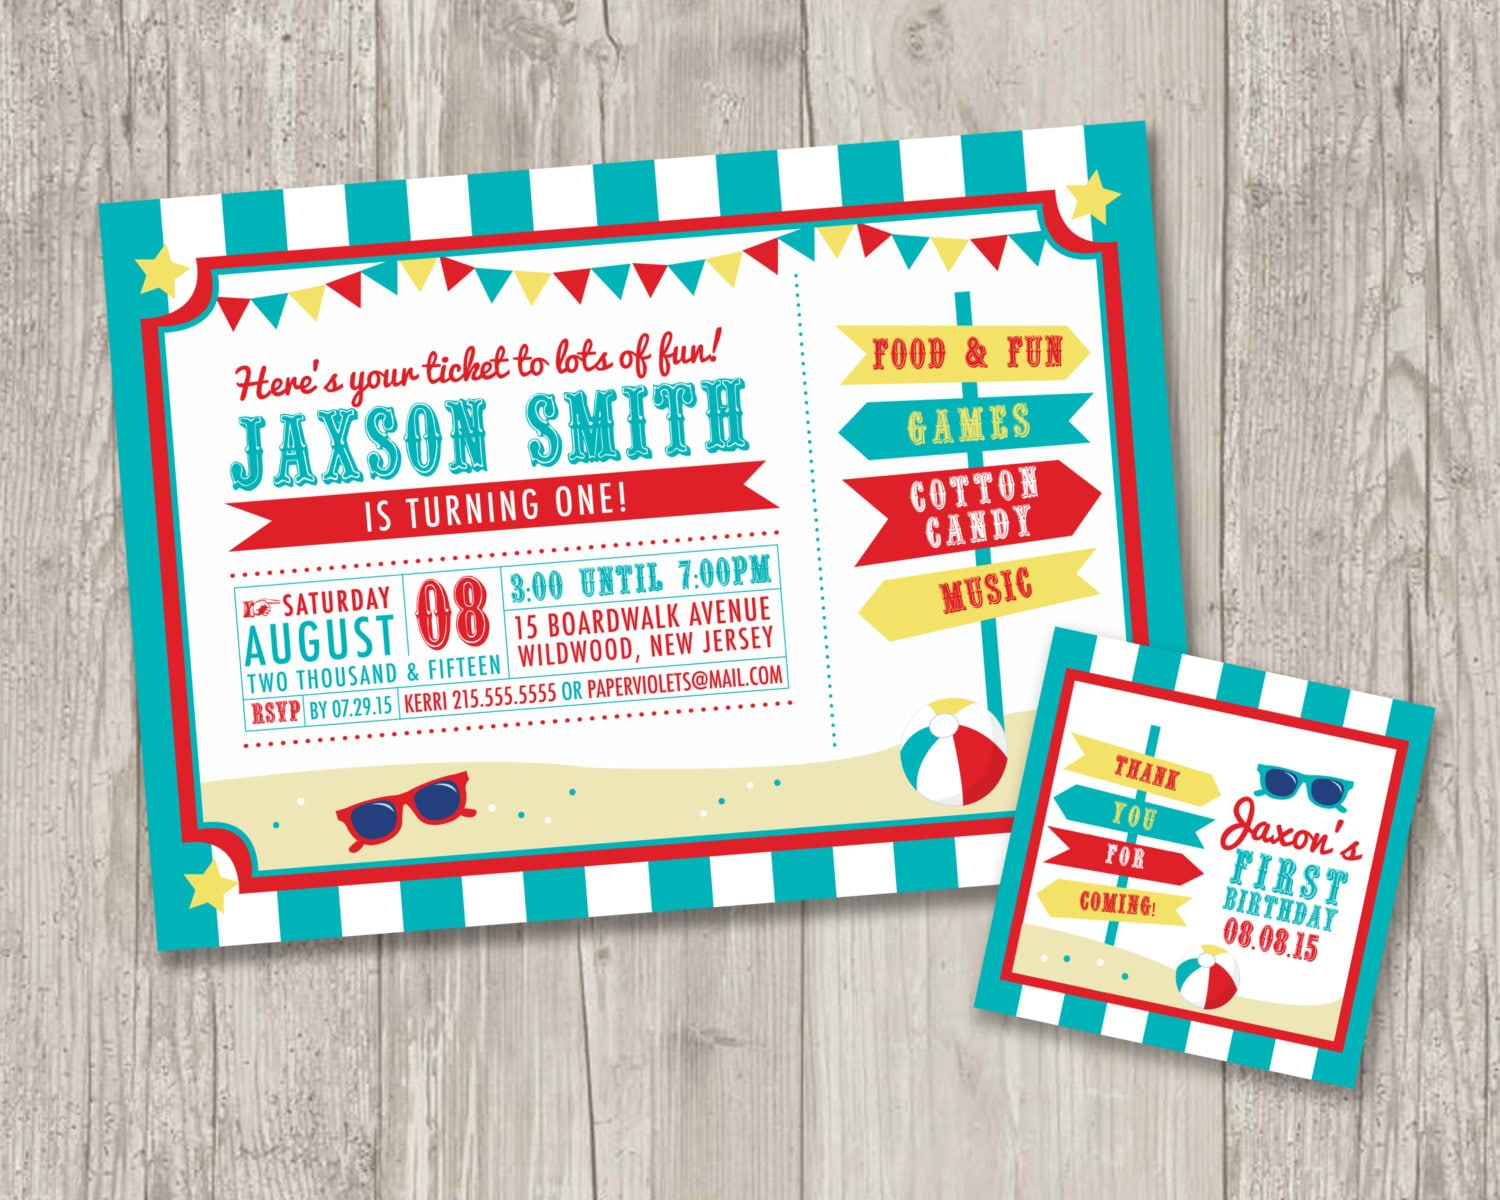 Carnival Themed Birthday Party Invitation wedding invitation email text